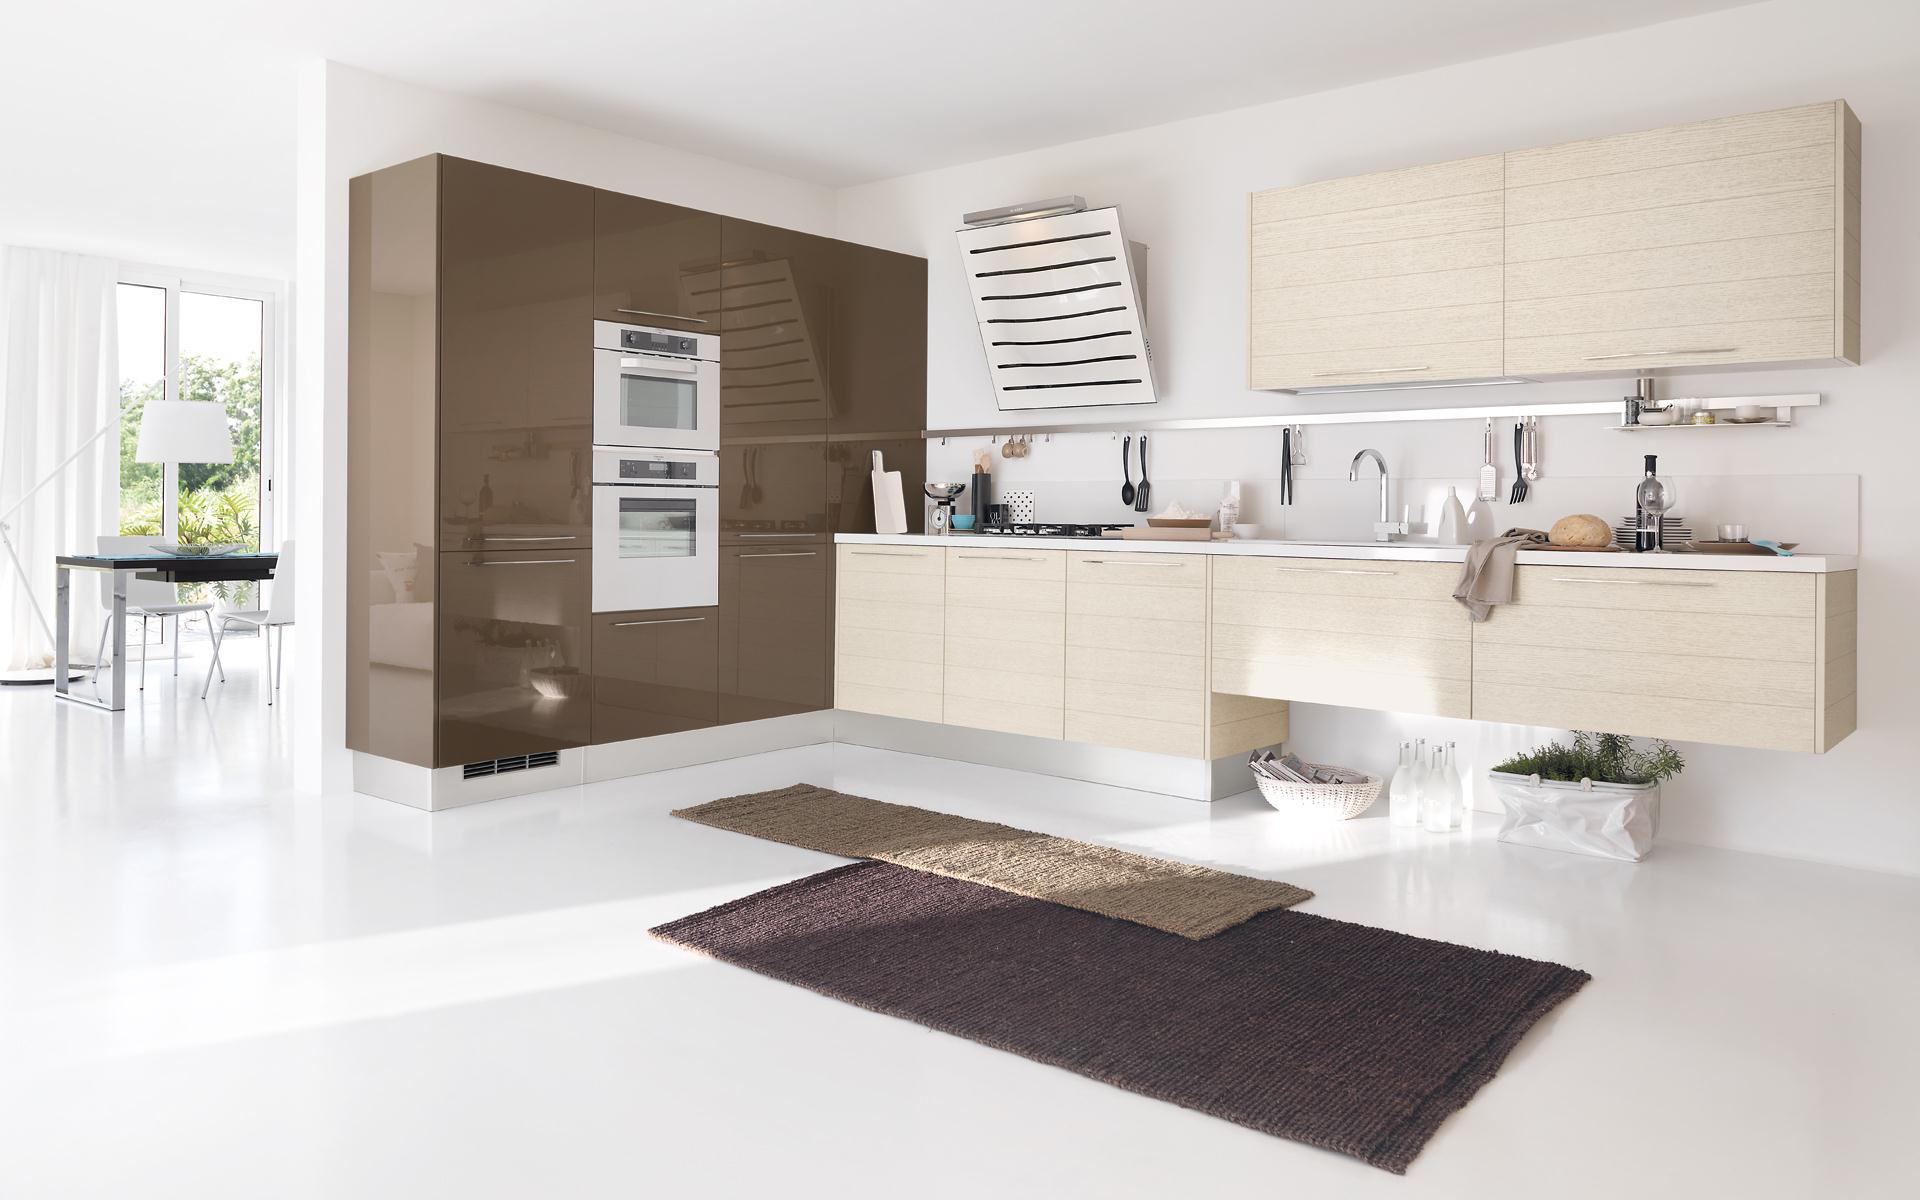 Cucina Lube Fabiana. Beautiful Lube Cucine Cucina Fabiana With ...